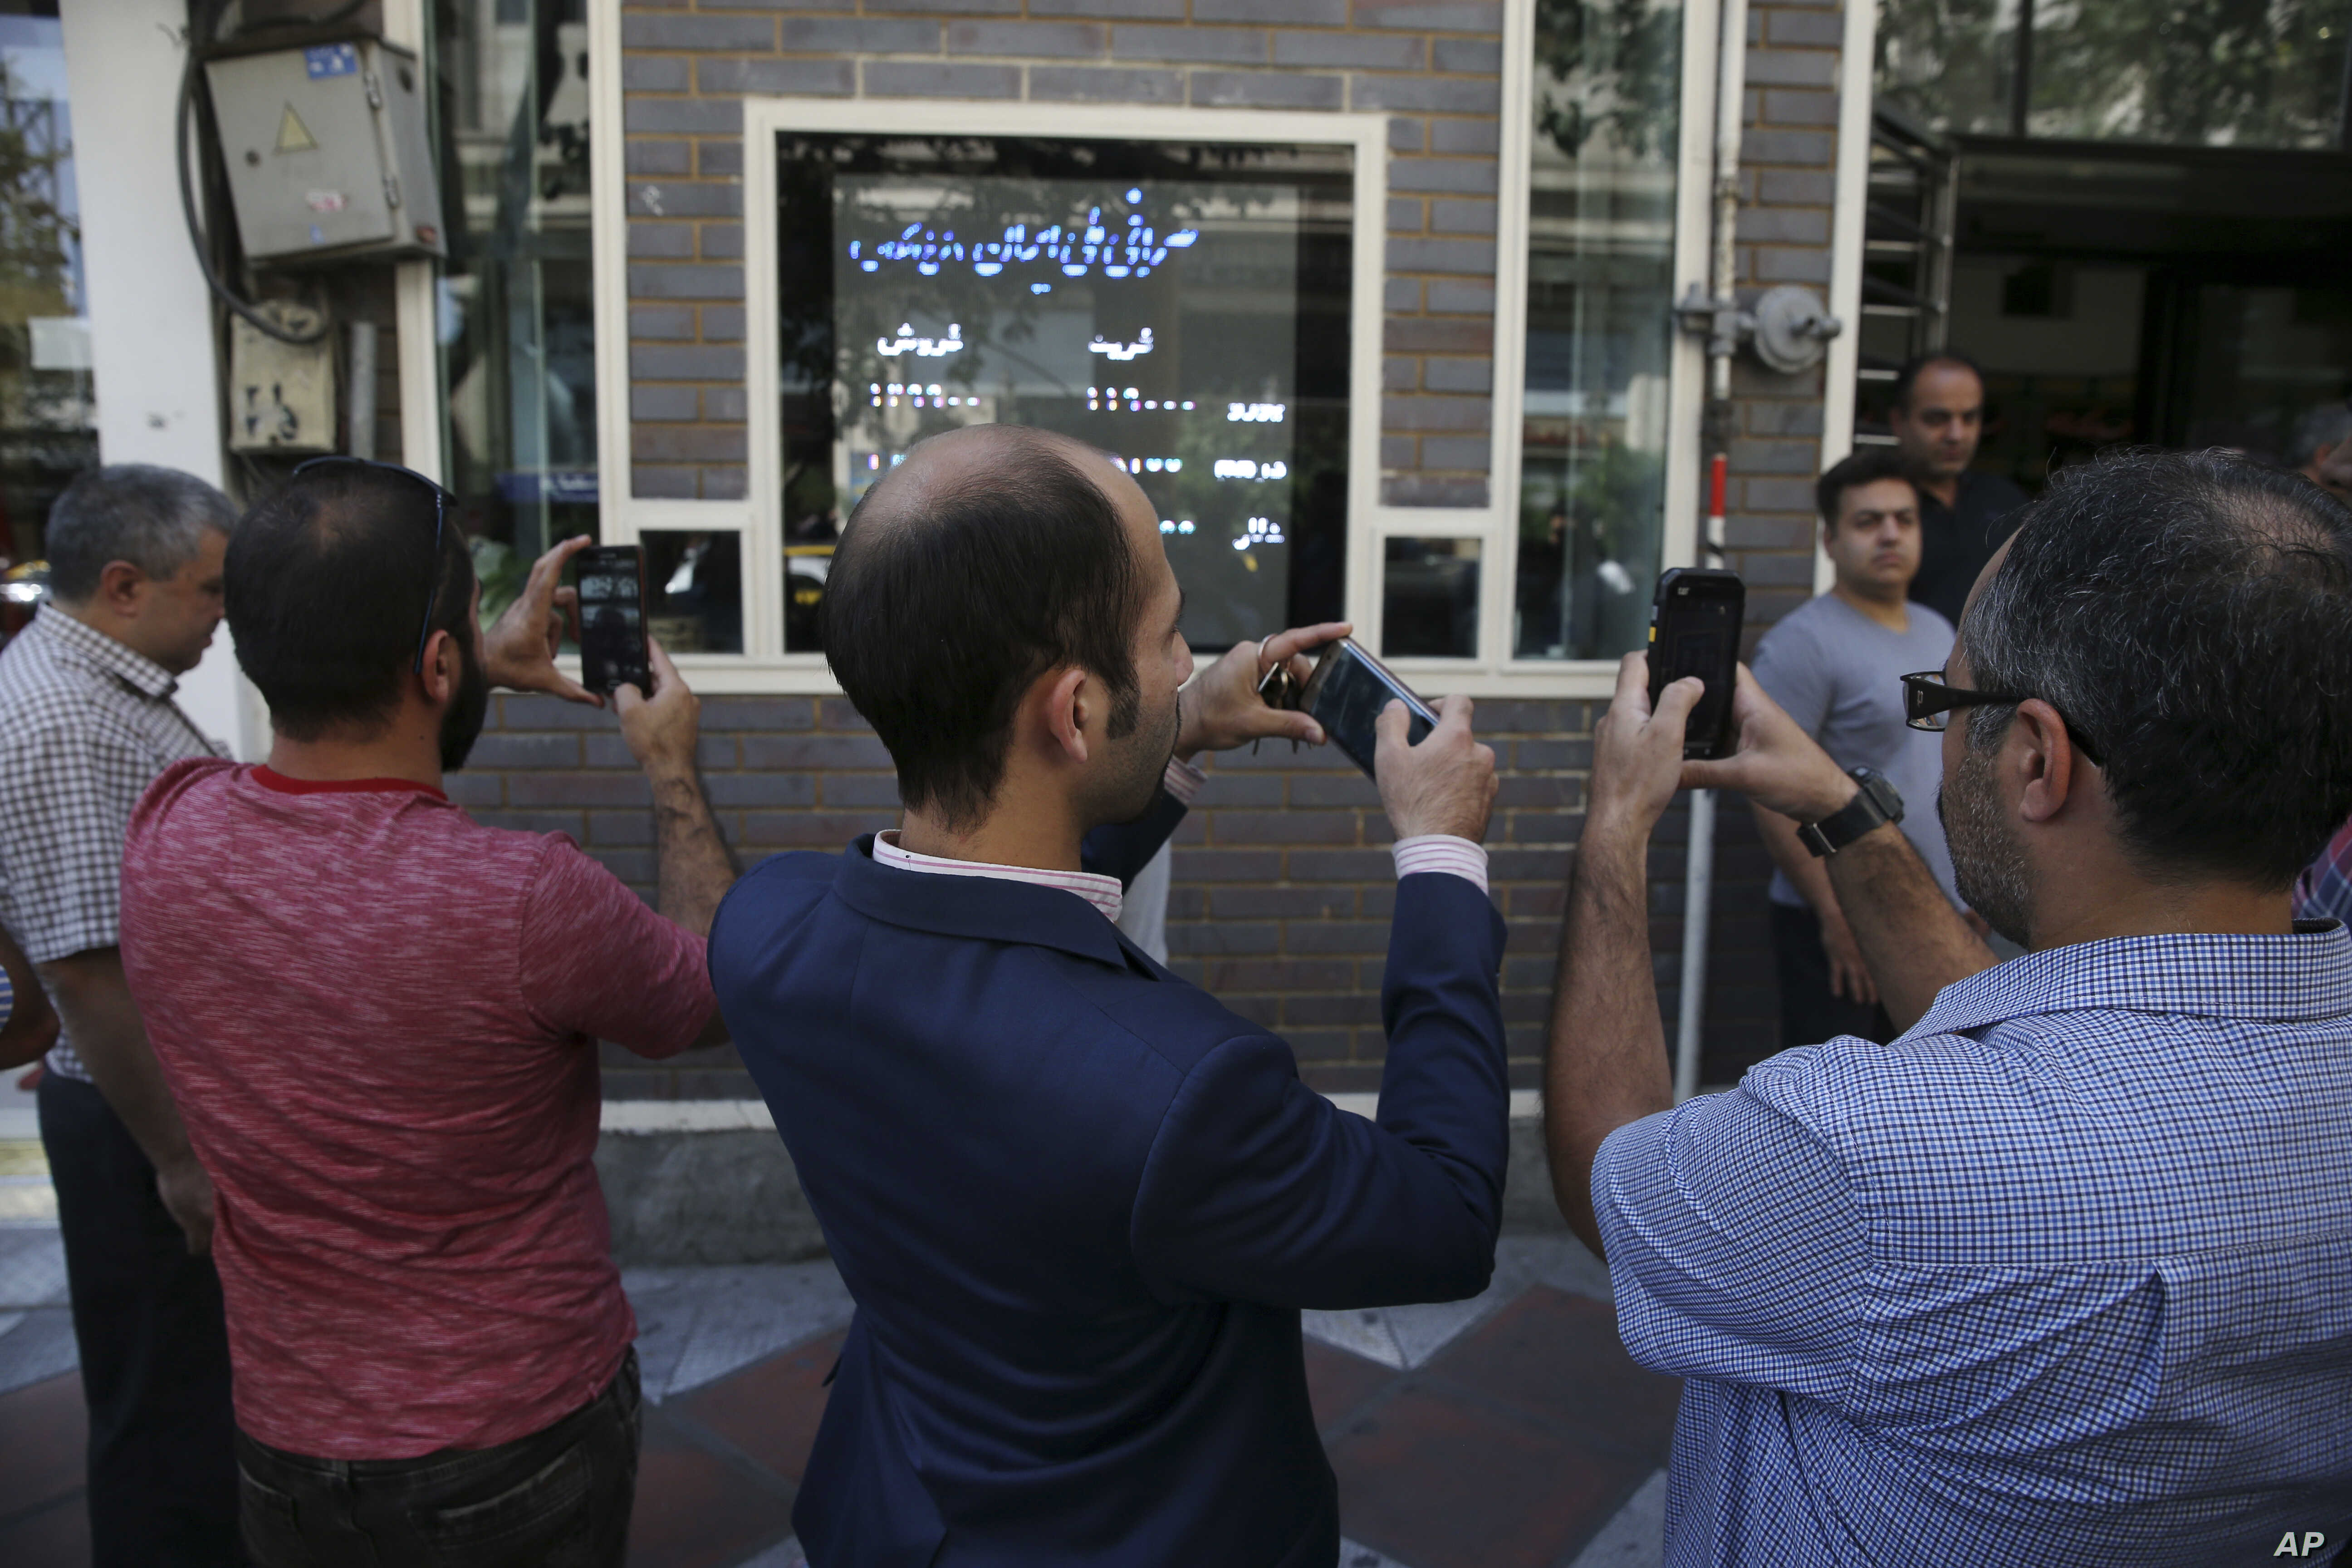 FILE - Iranians take pictures of an exchange shop screen showing various currency rates in downtown Tehran, Oct. 2, 2018. Iran's currency, the rial, had unexpectedly rallied after weeks of depreciation following President Donald Trump's decision to w...